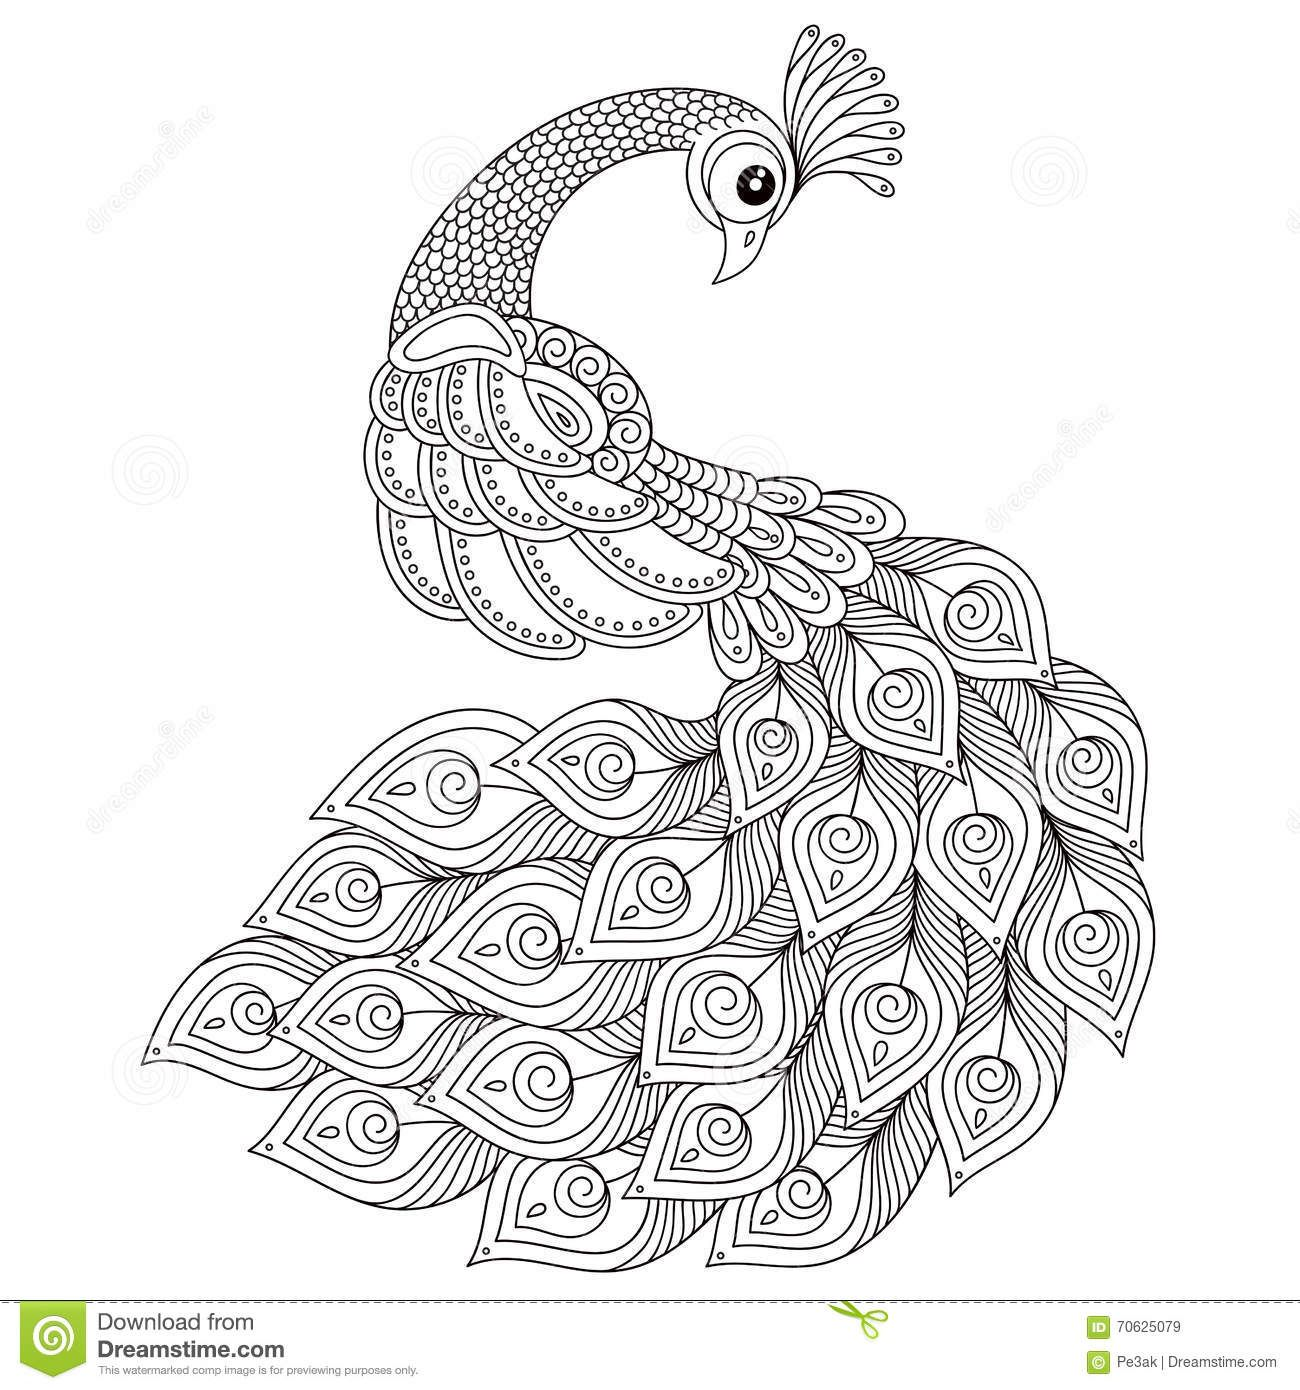 peacock adult antistress coloring page stock vector